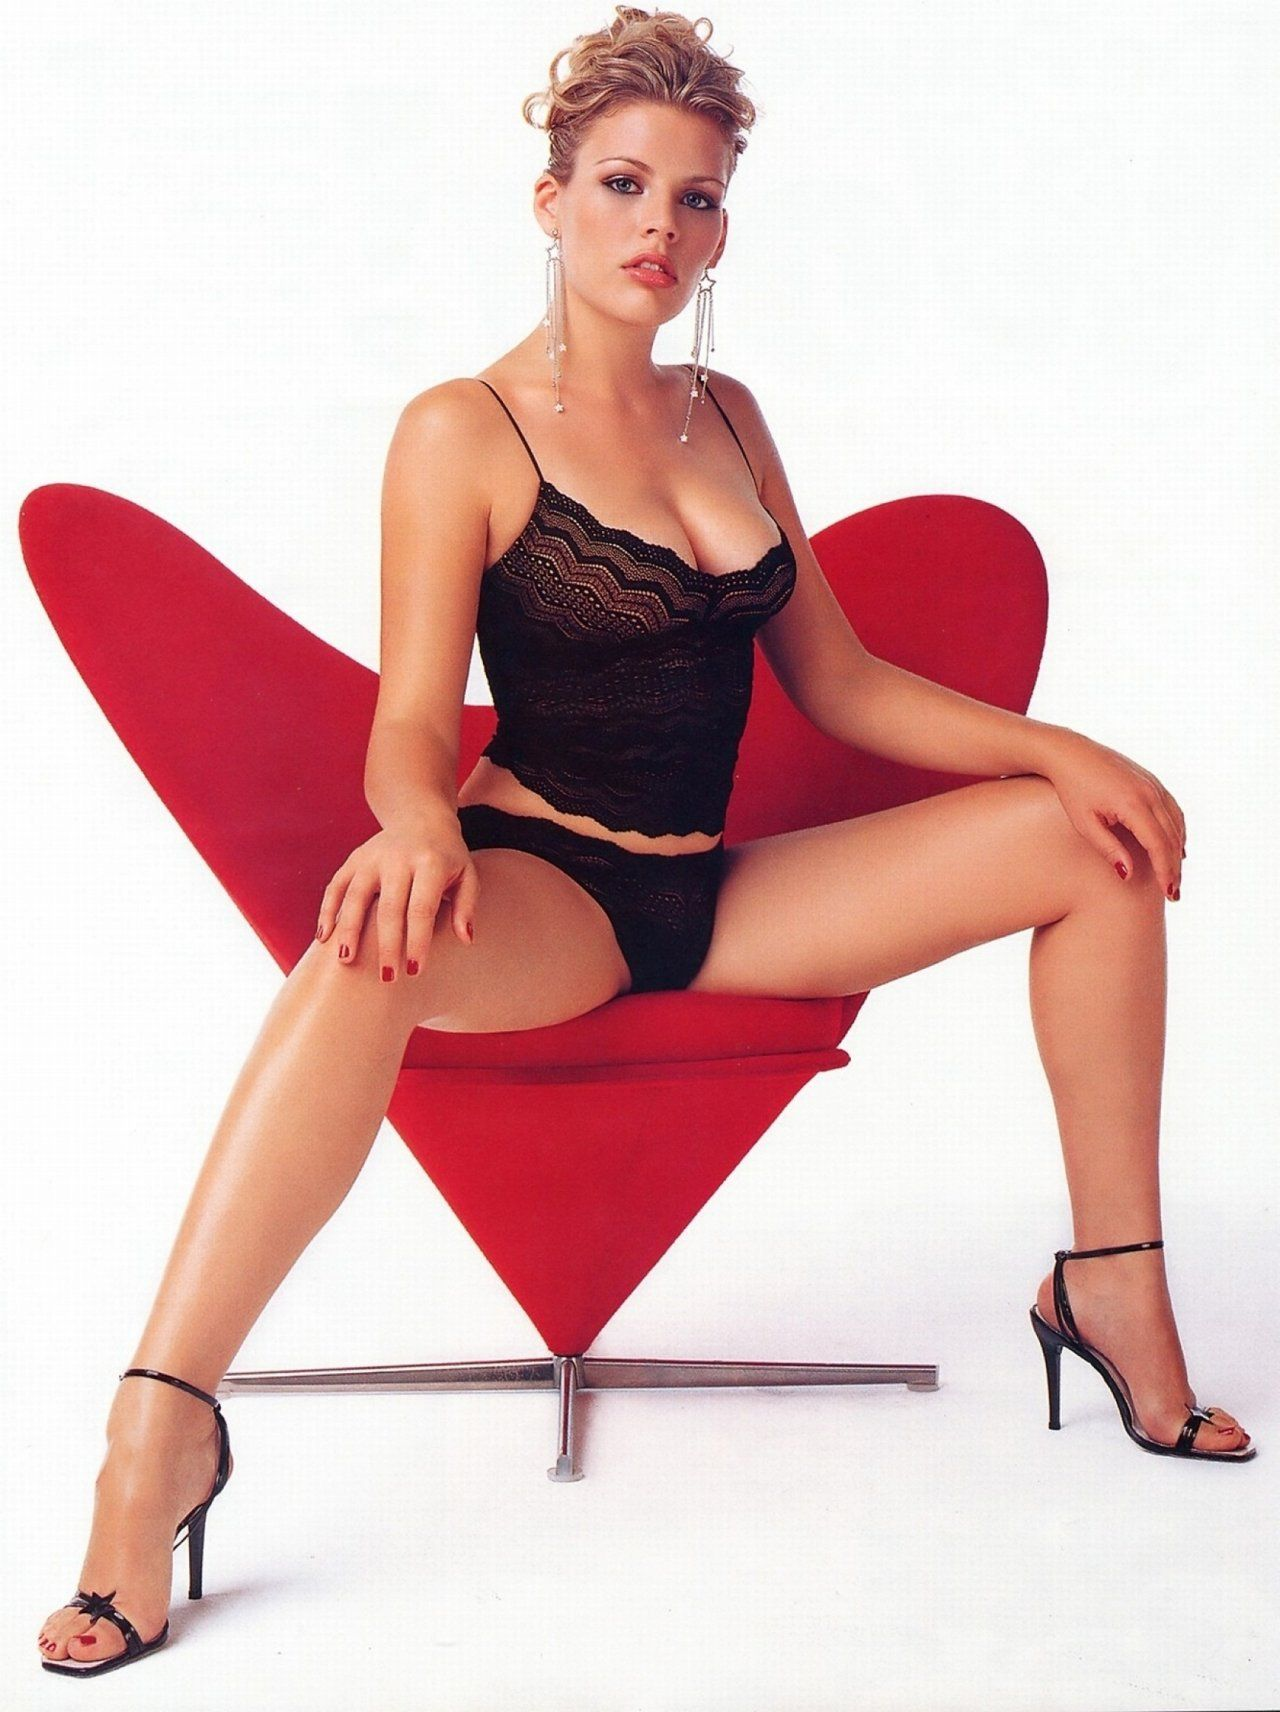 Busy Philipps   Sexy Celebs II   Pinterest   Busy philipps